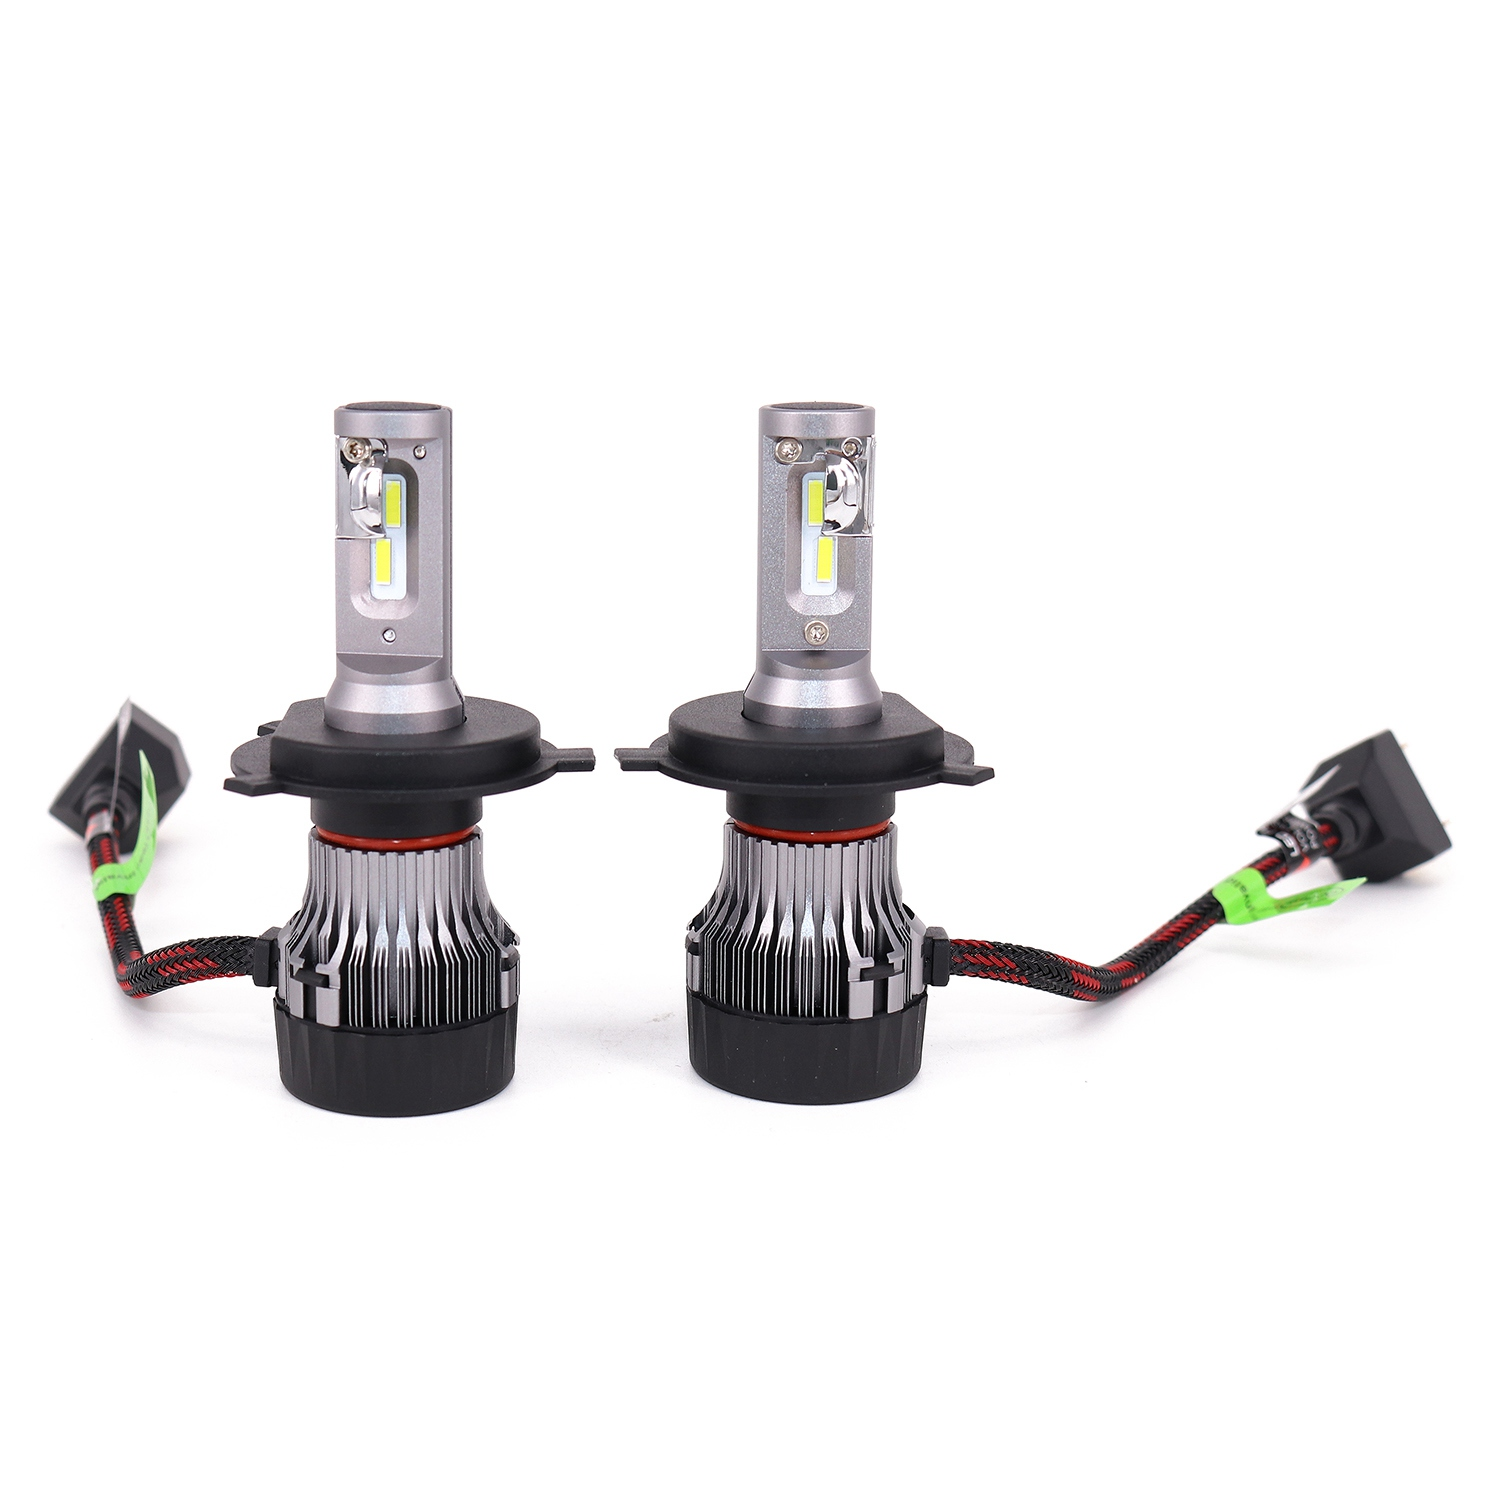 Car Headlight Bulbs(led) Automobiles & Motorcycles Objective Mini H4 Led Headlight Bulbs,60w 10000lm 4700lux 6500k Cool White Extremely Bright 30mm Heatsink Base Conversion Kit Clients First